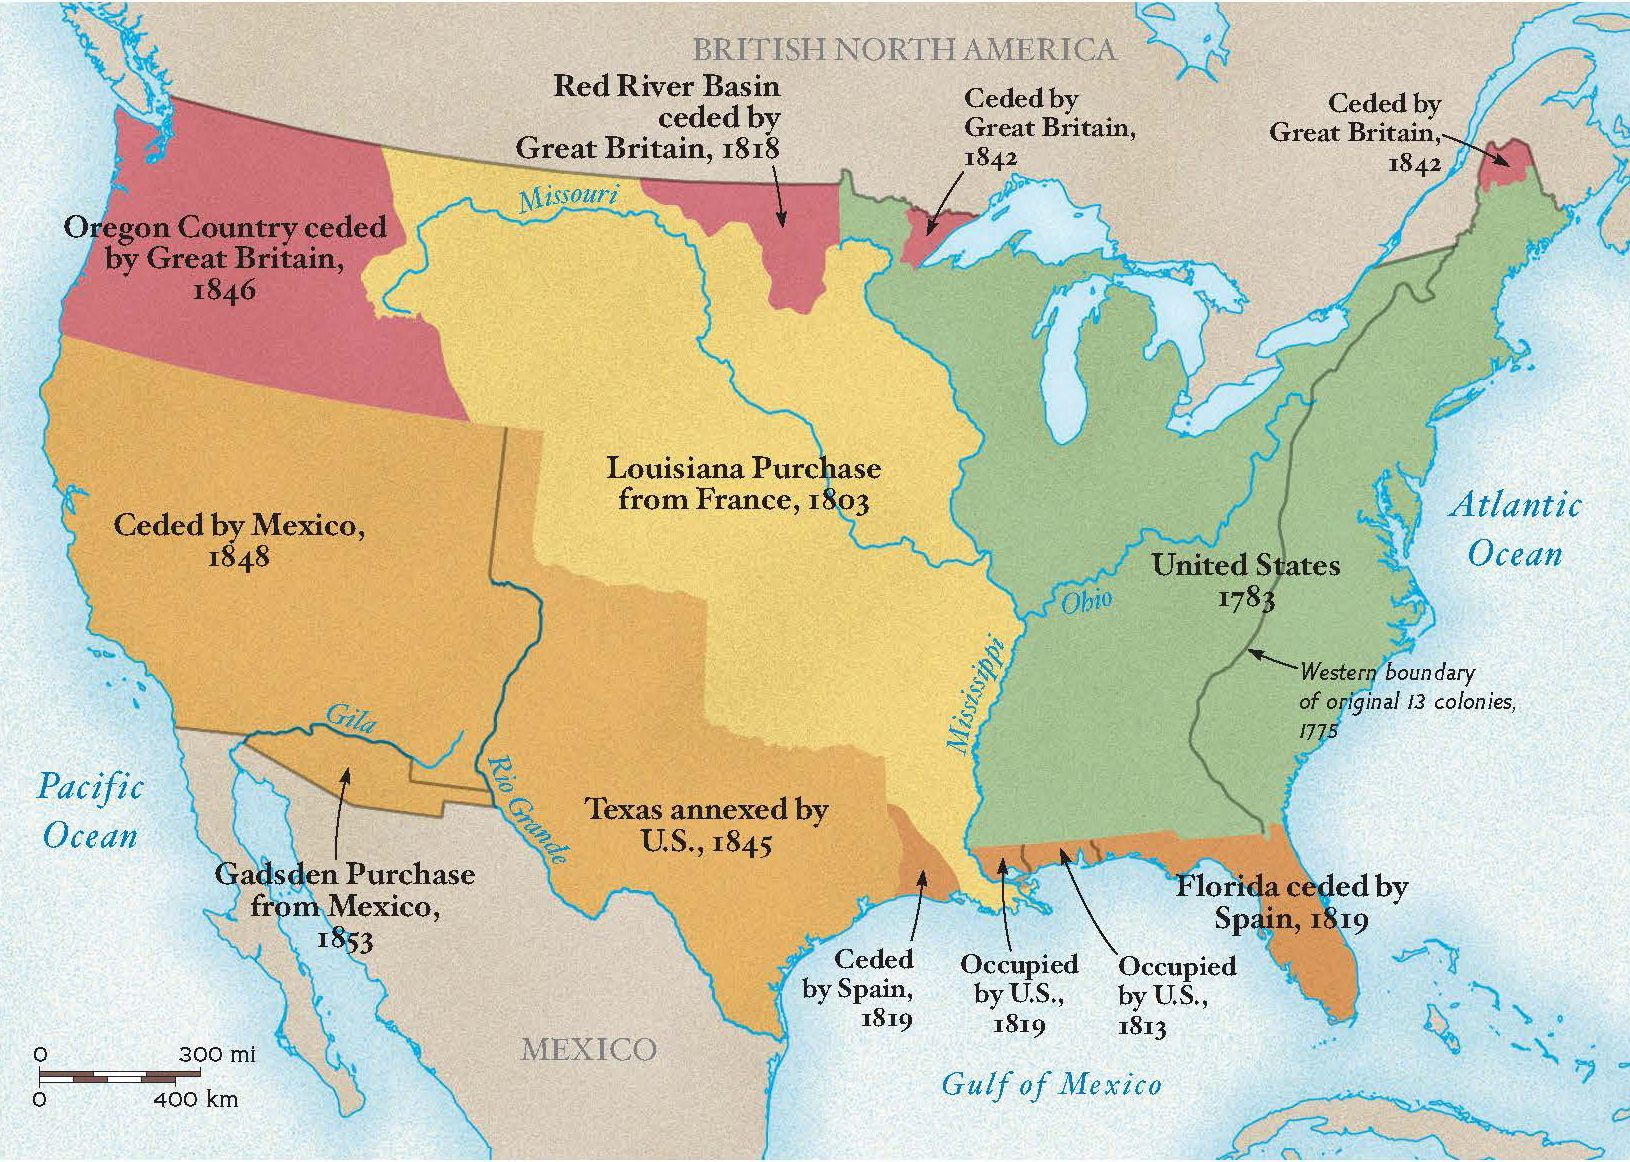 Map Of Us Territories Territorial Gains by the U.S. | National Geographic Society